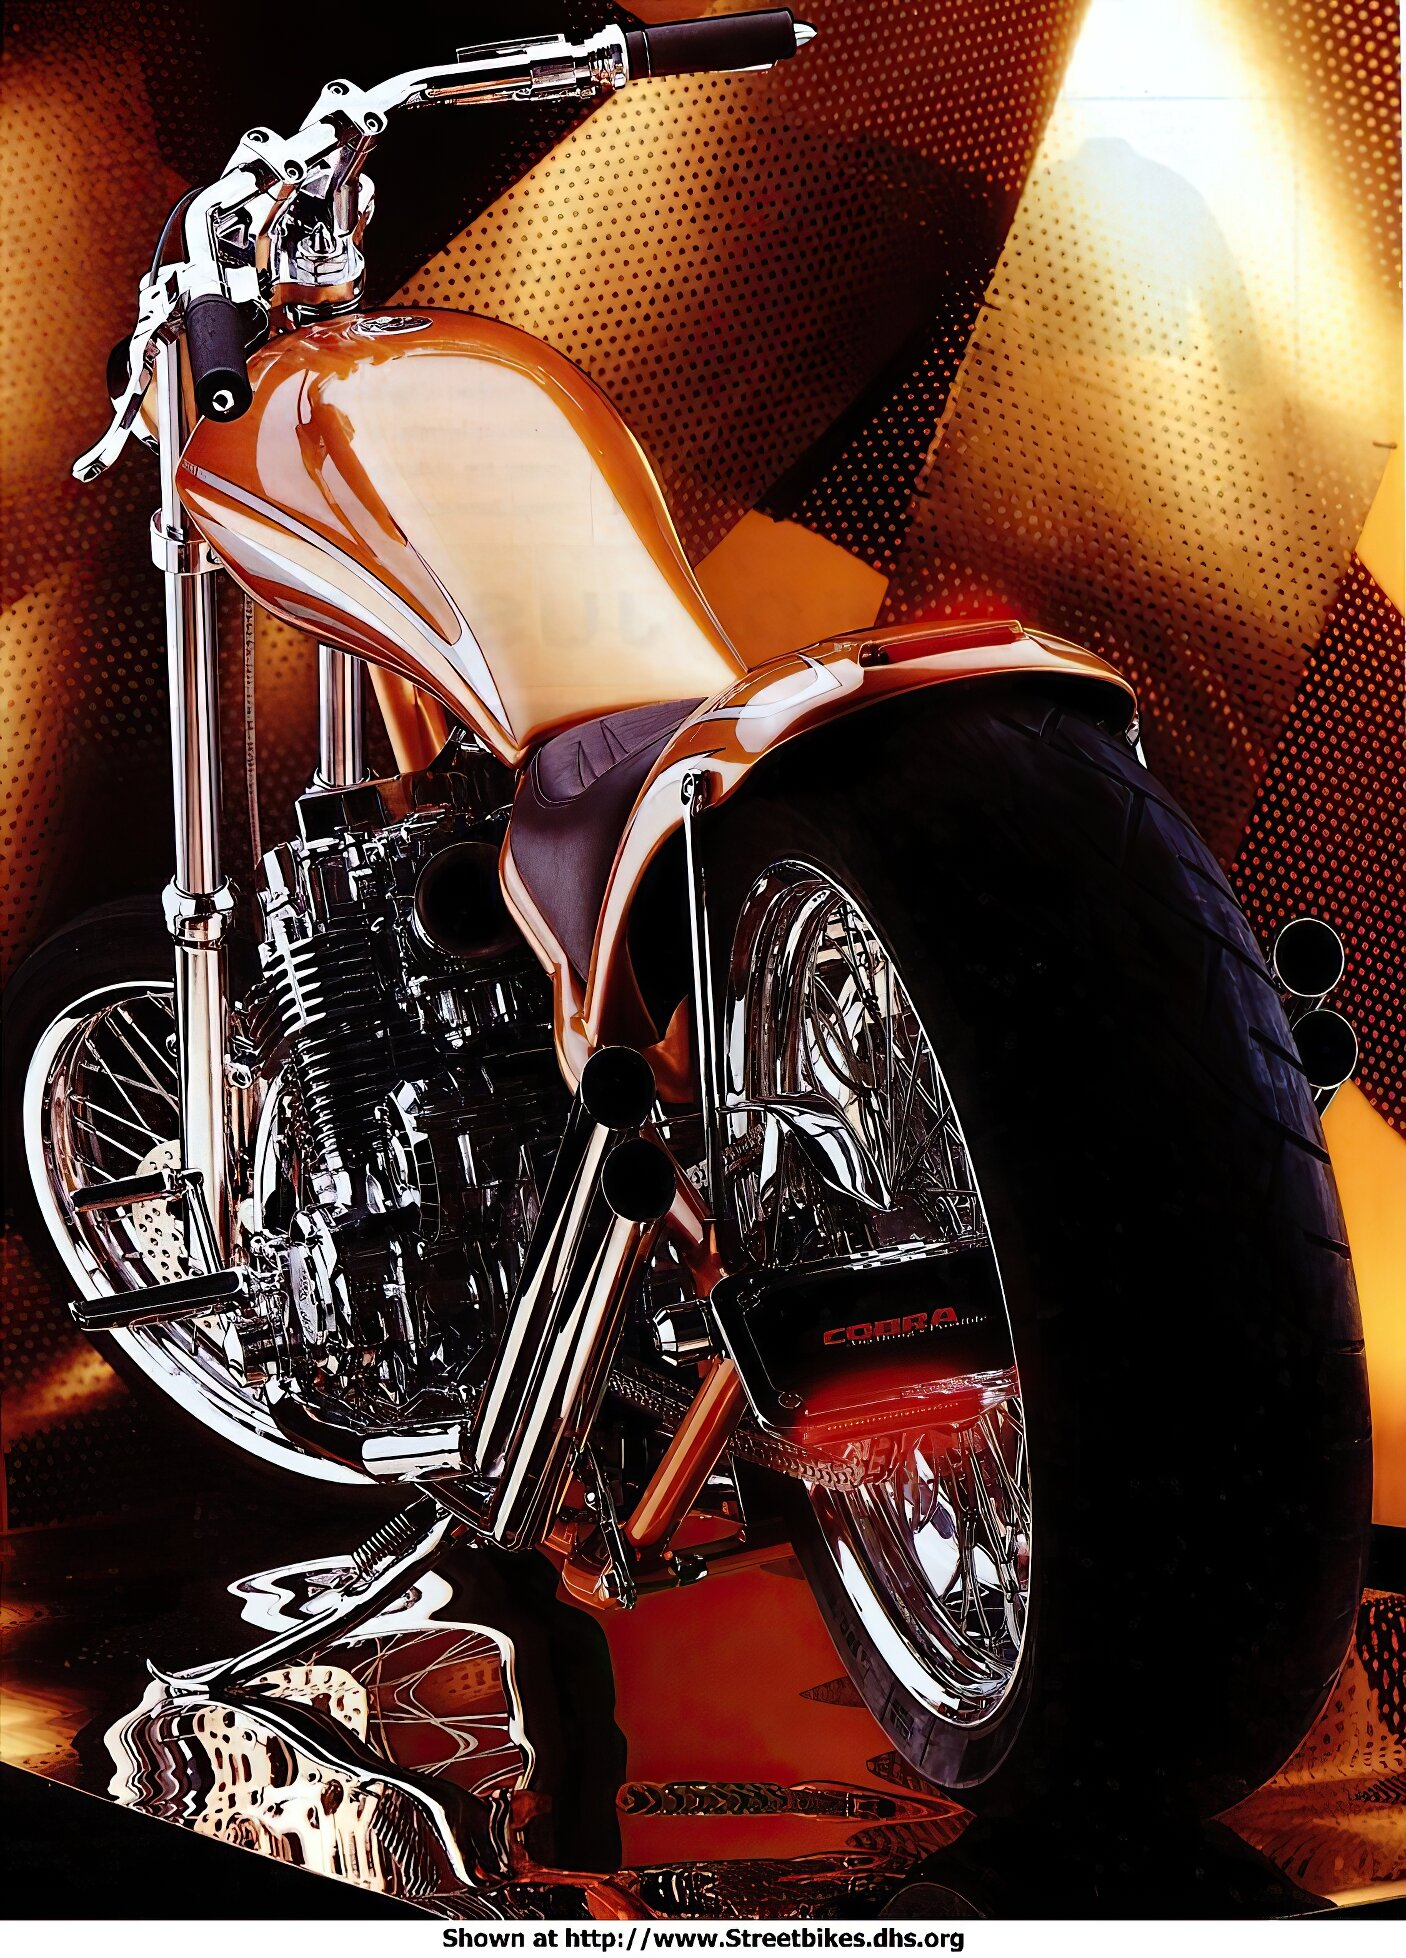 Harley-Davidson Unknown (HD) - ID: 1294